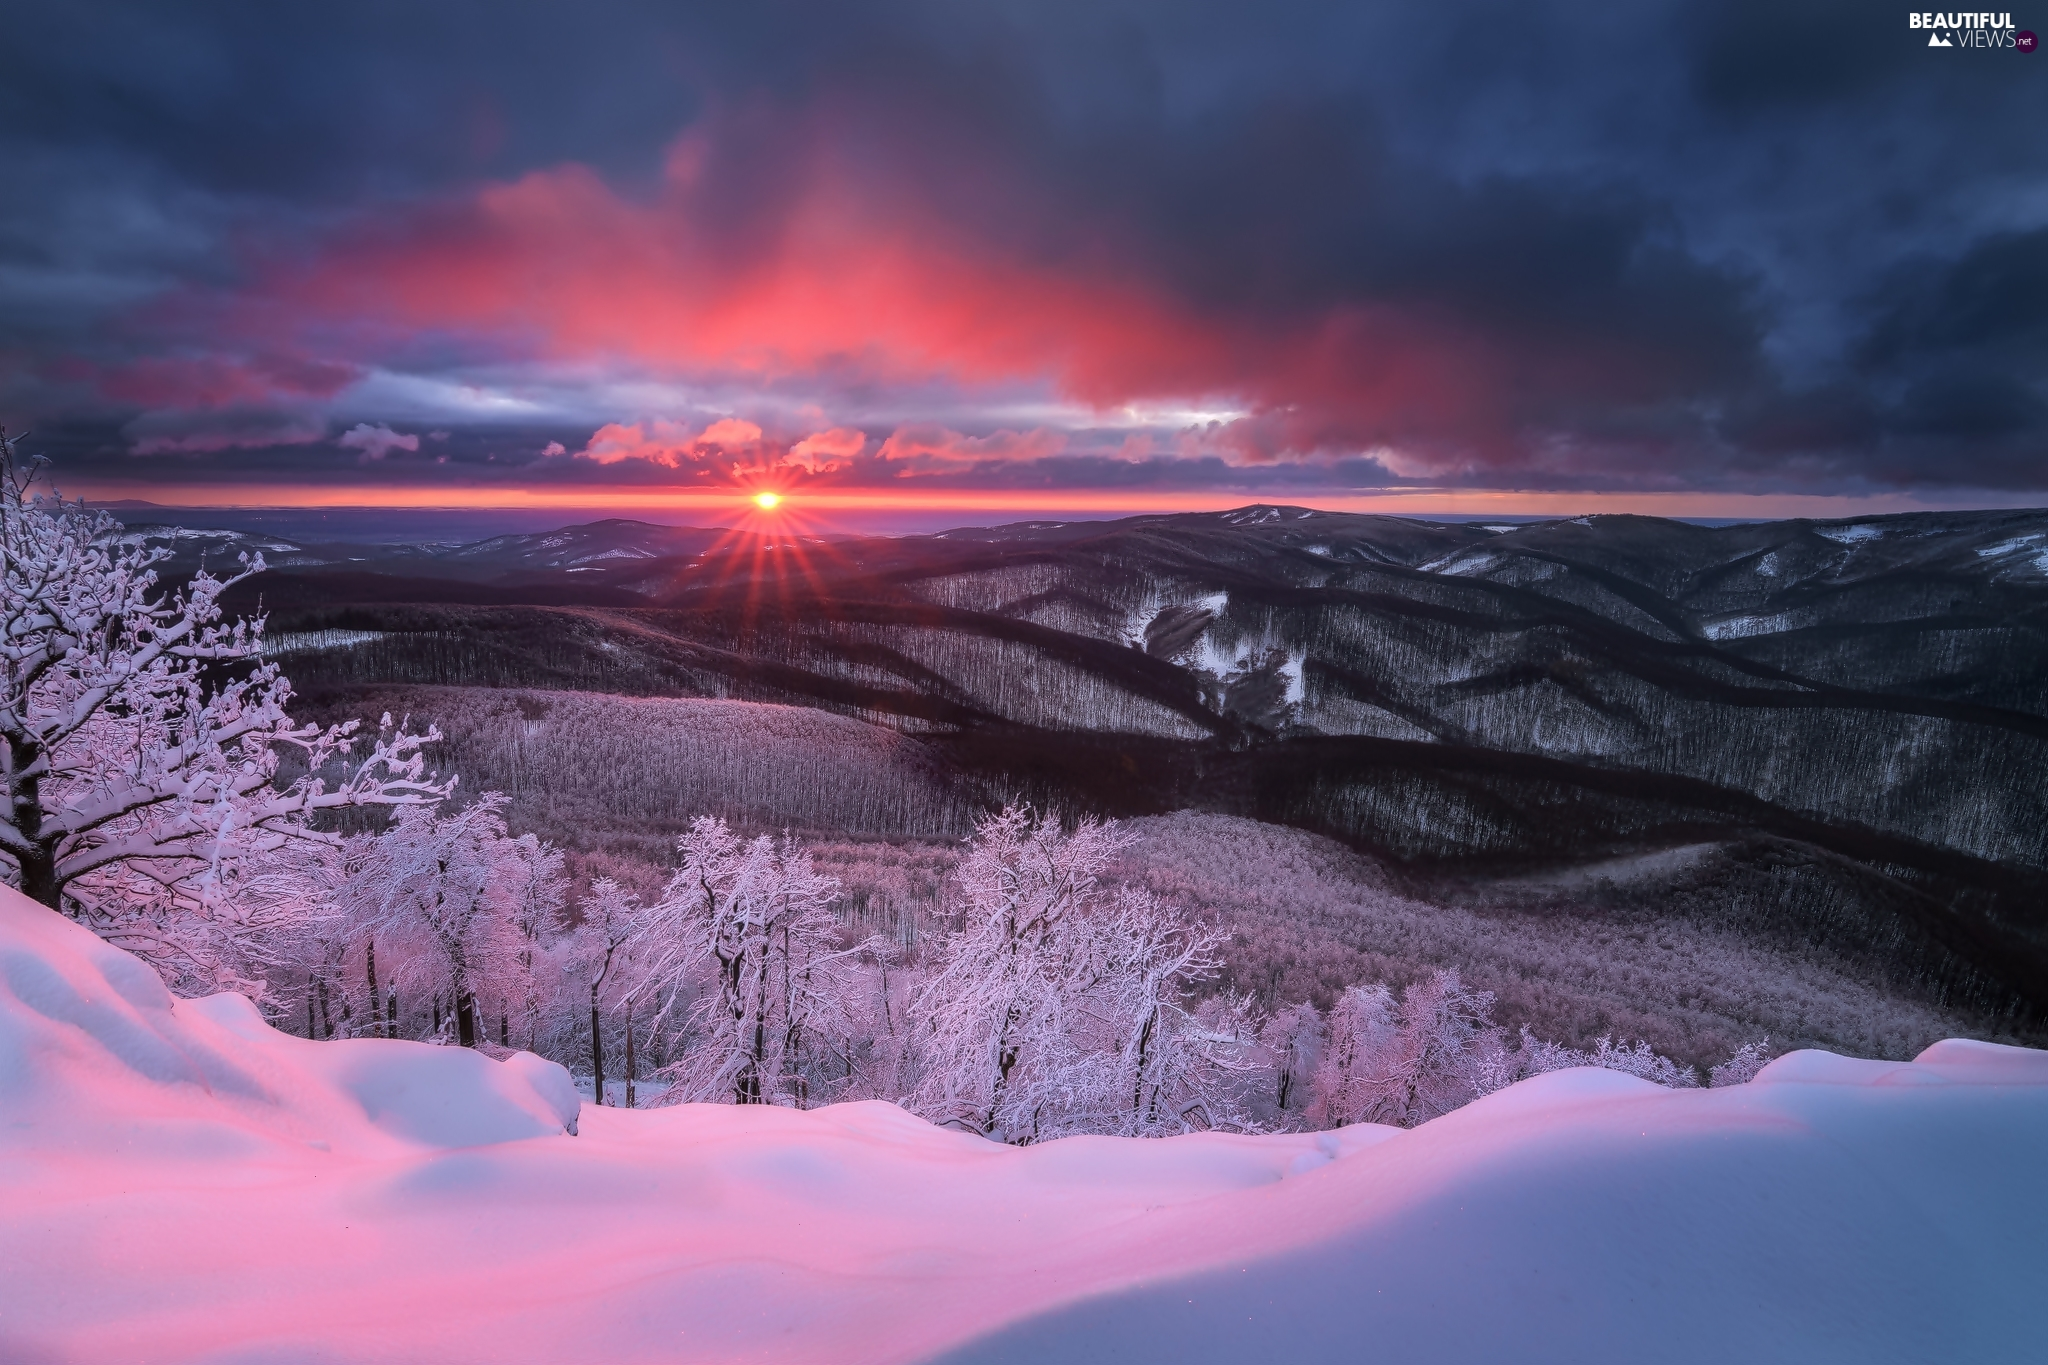 forest, Snowy, clouds, trees, Great Sunsets, winter, Mountains, viewes